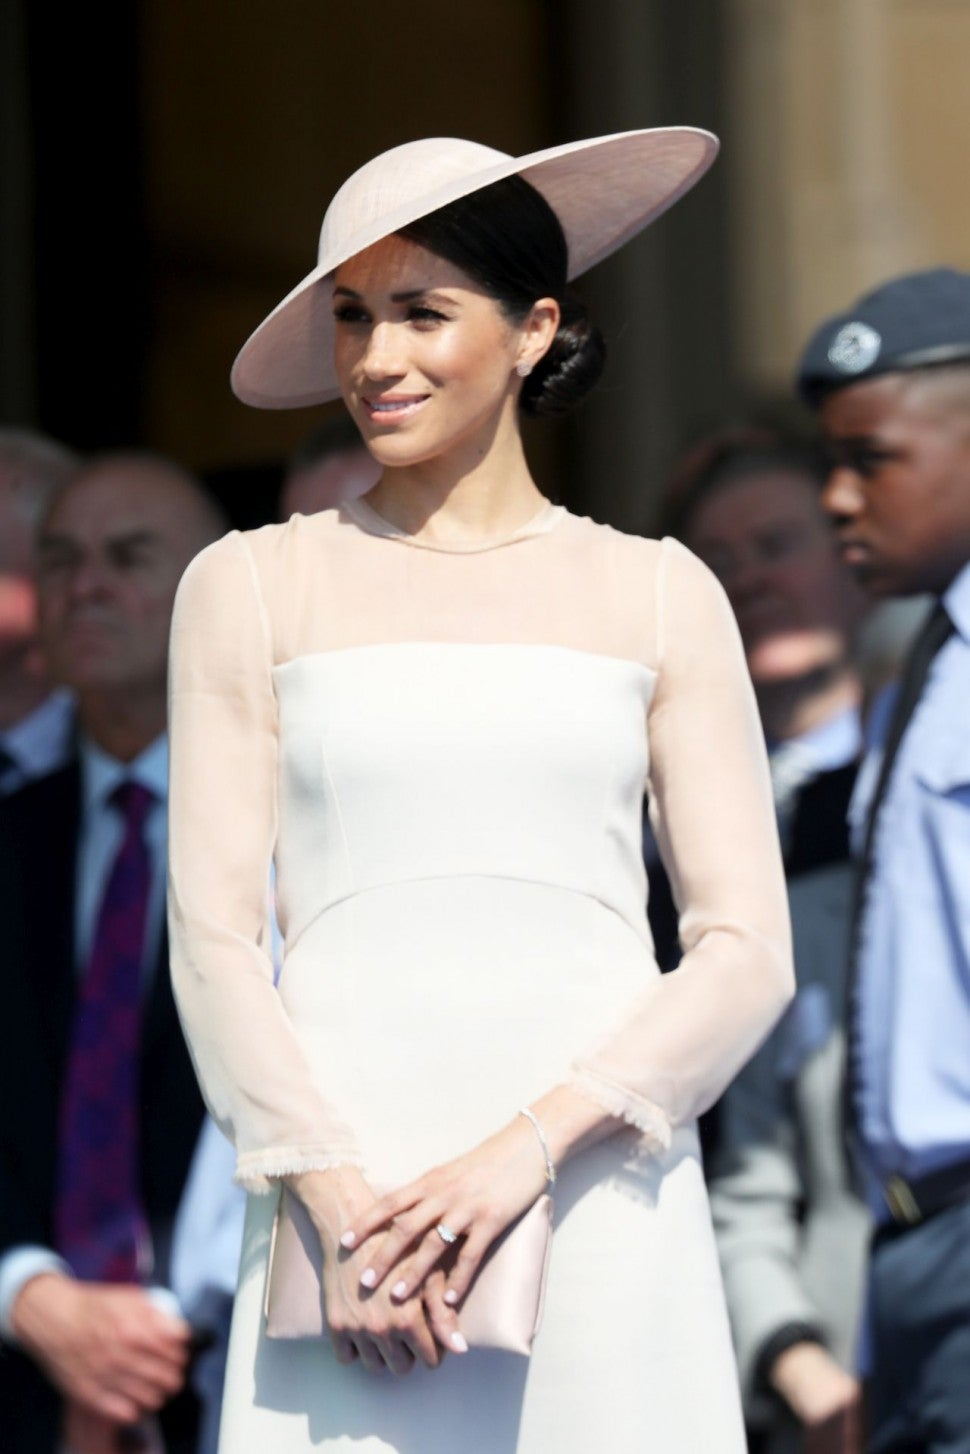 Meghan Markle at Garden Party